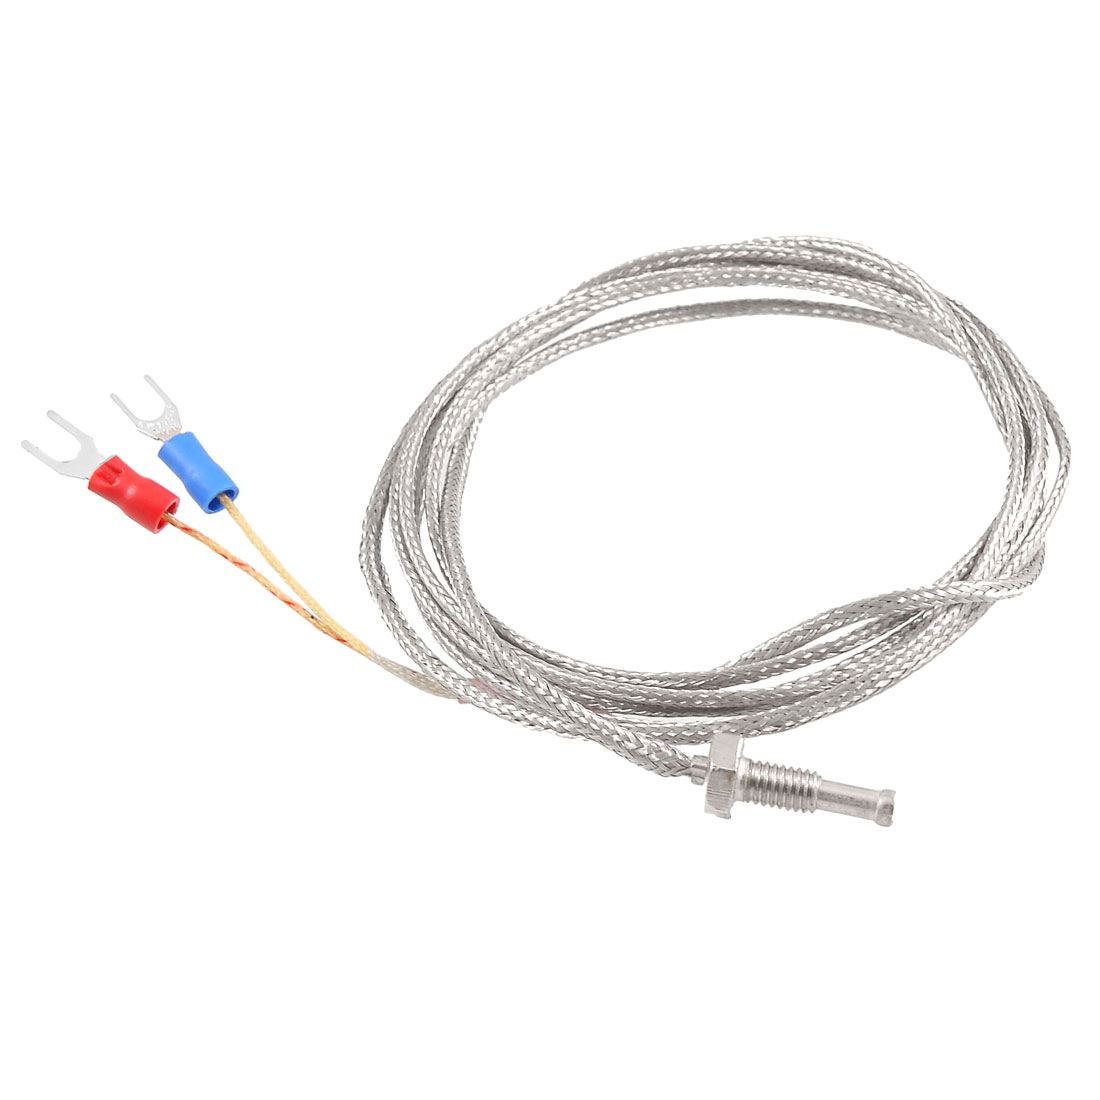 K Type Thermocouple Temperature Controller Sensor 0-400C 2M 6.6Ft Long